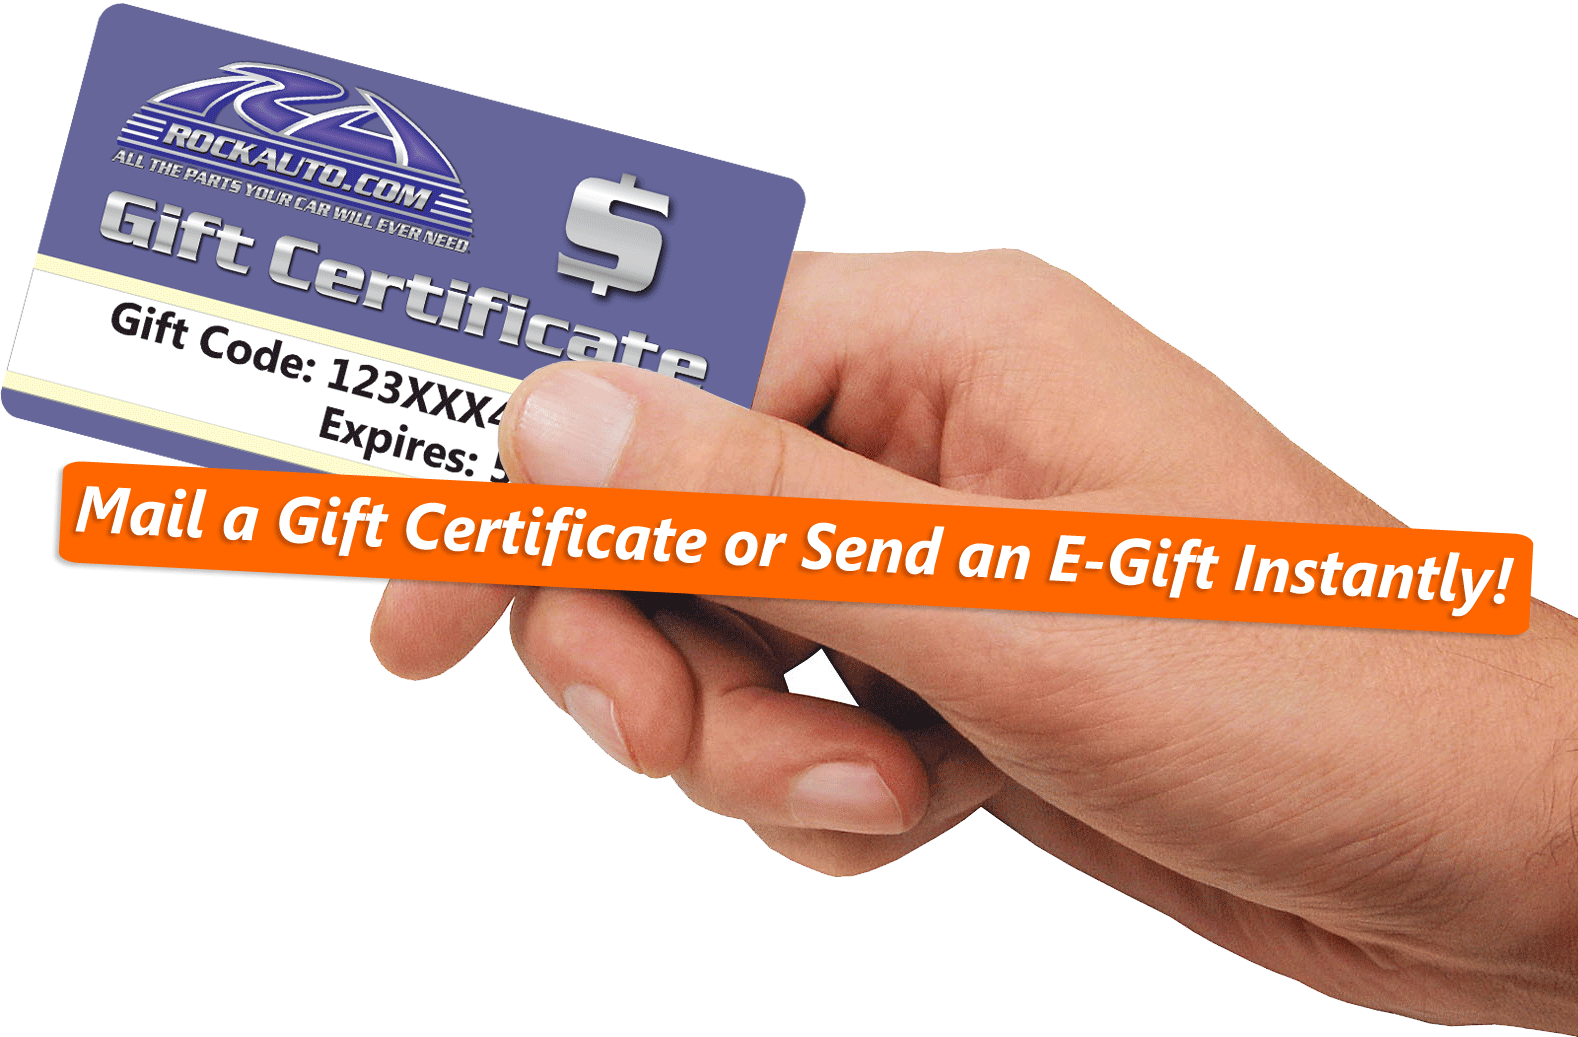 Make your gift giving easy with a RockAuto Gift Certificate